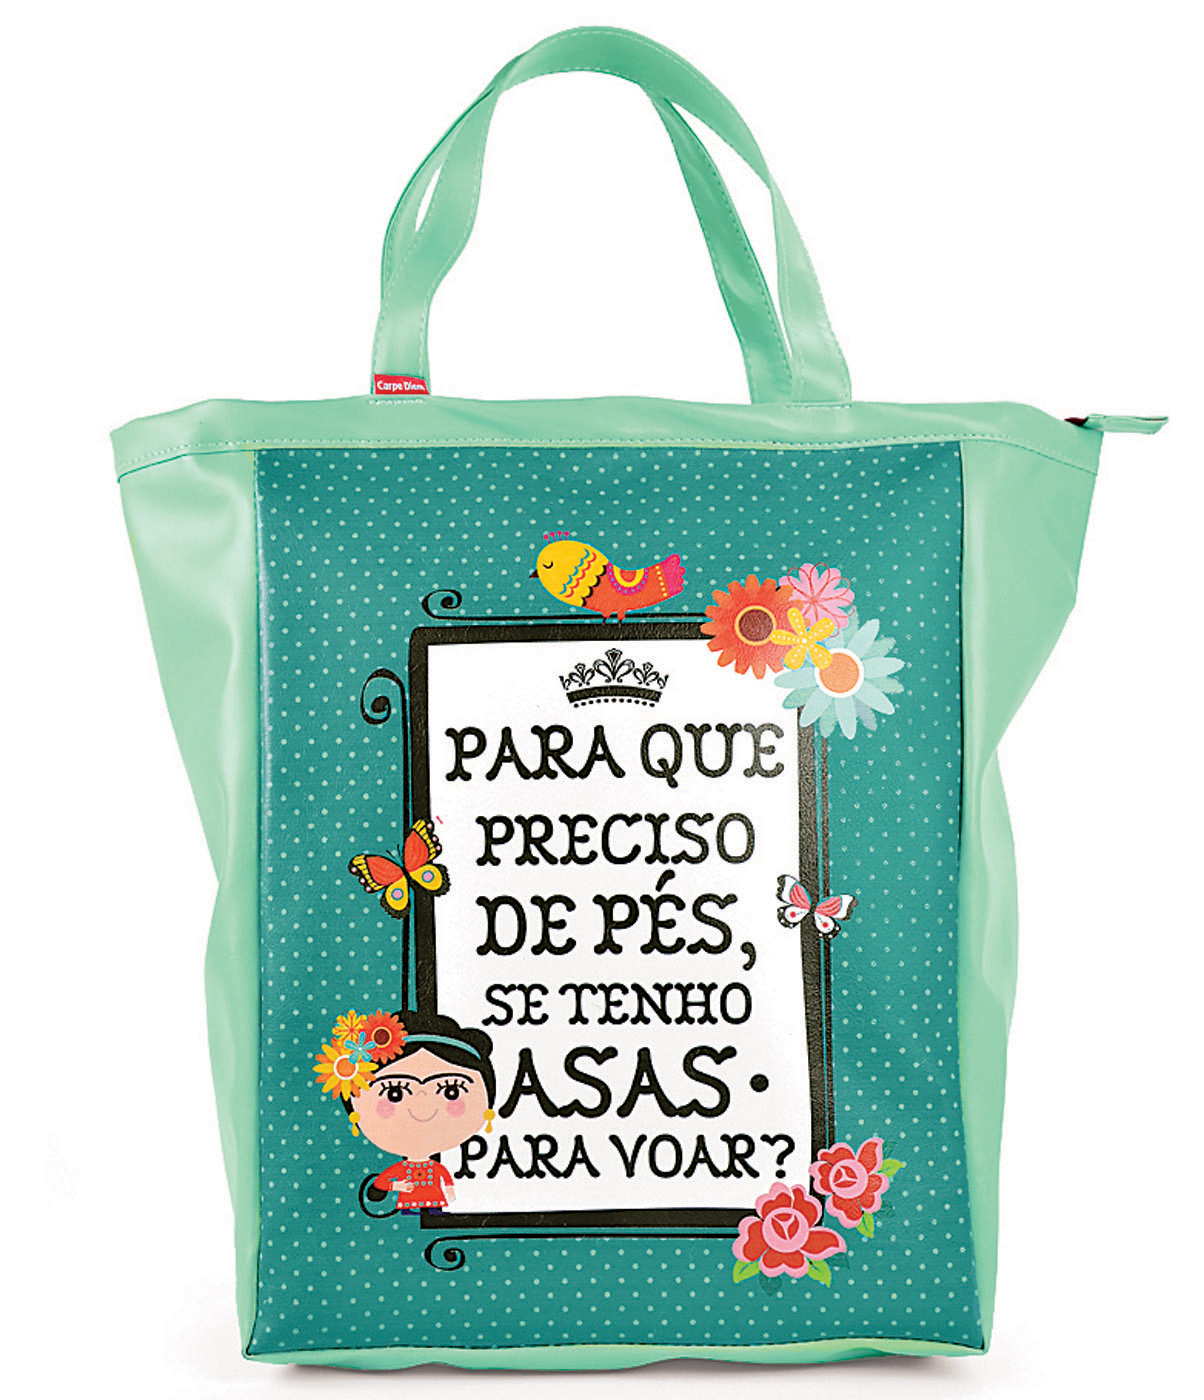 book bag Frida Kahlo da Poeme-se - R$ 89,00